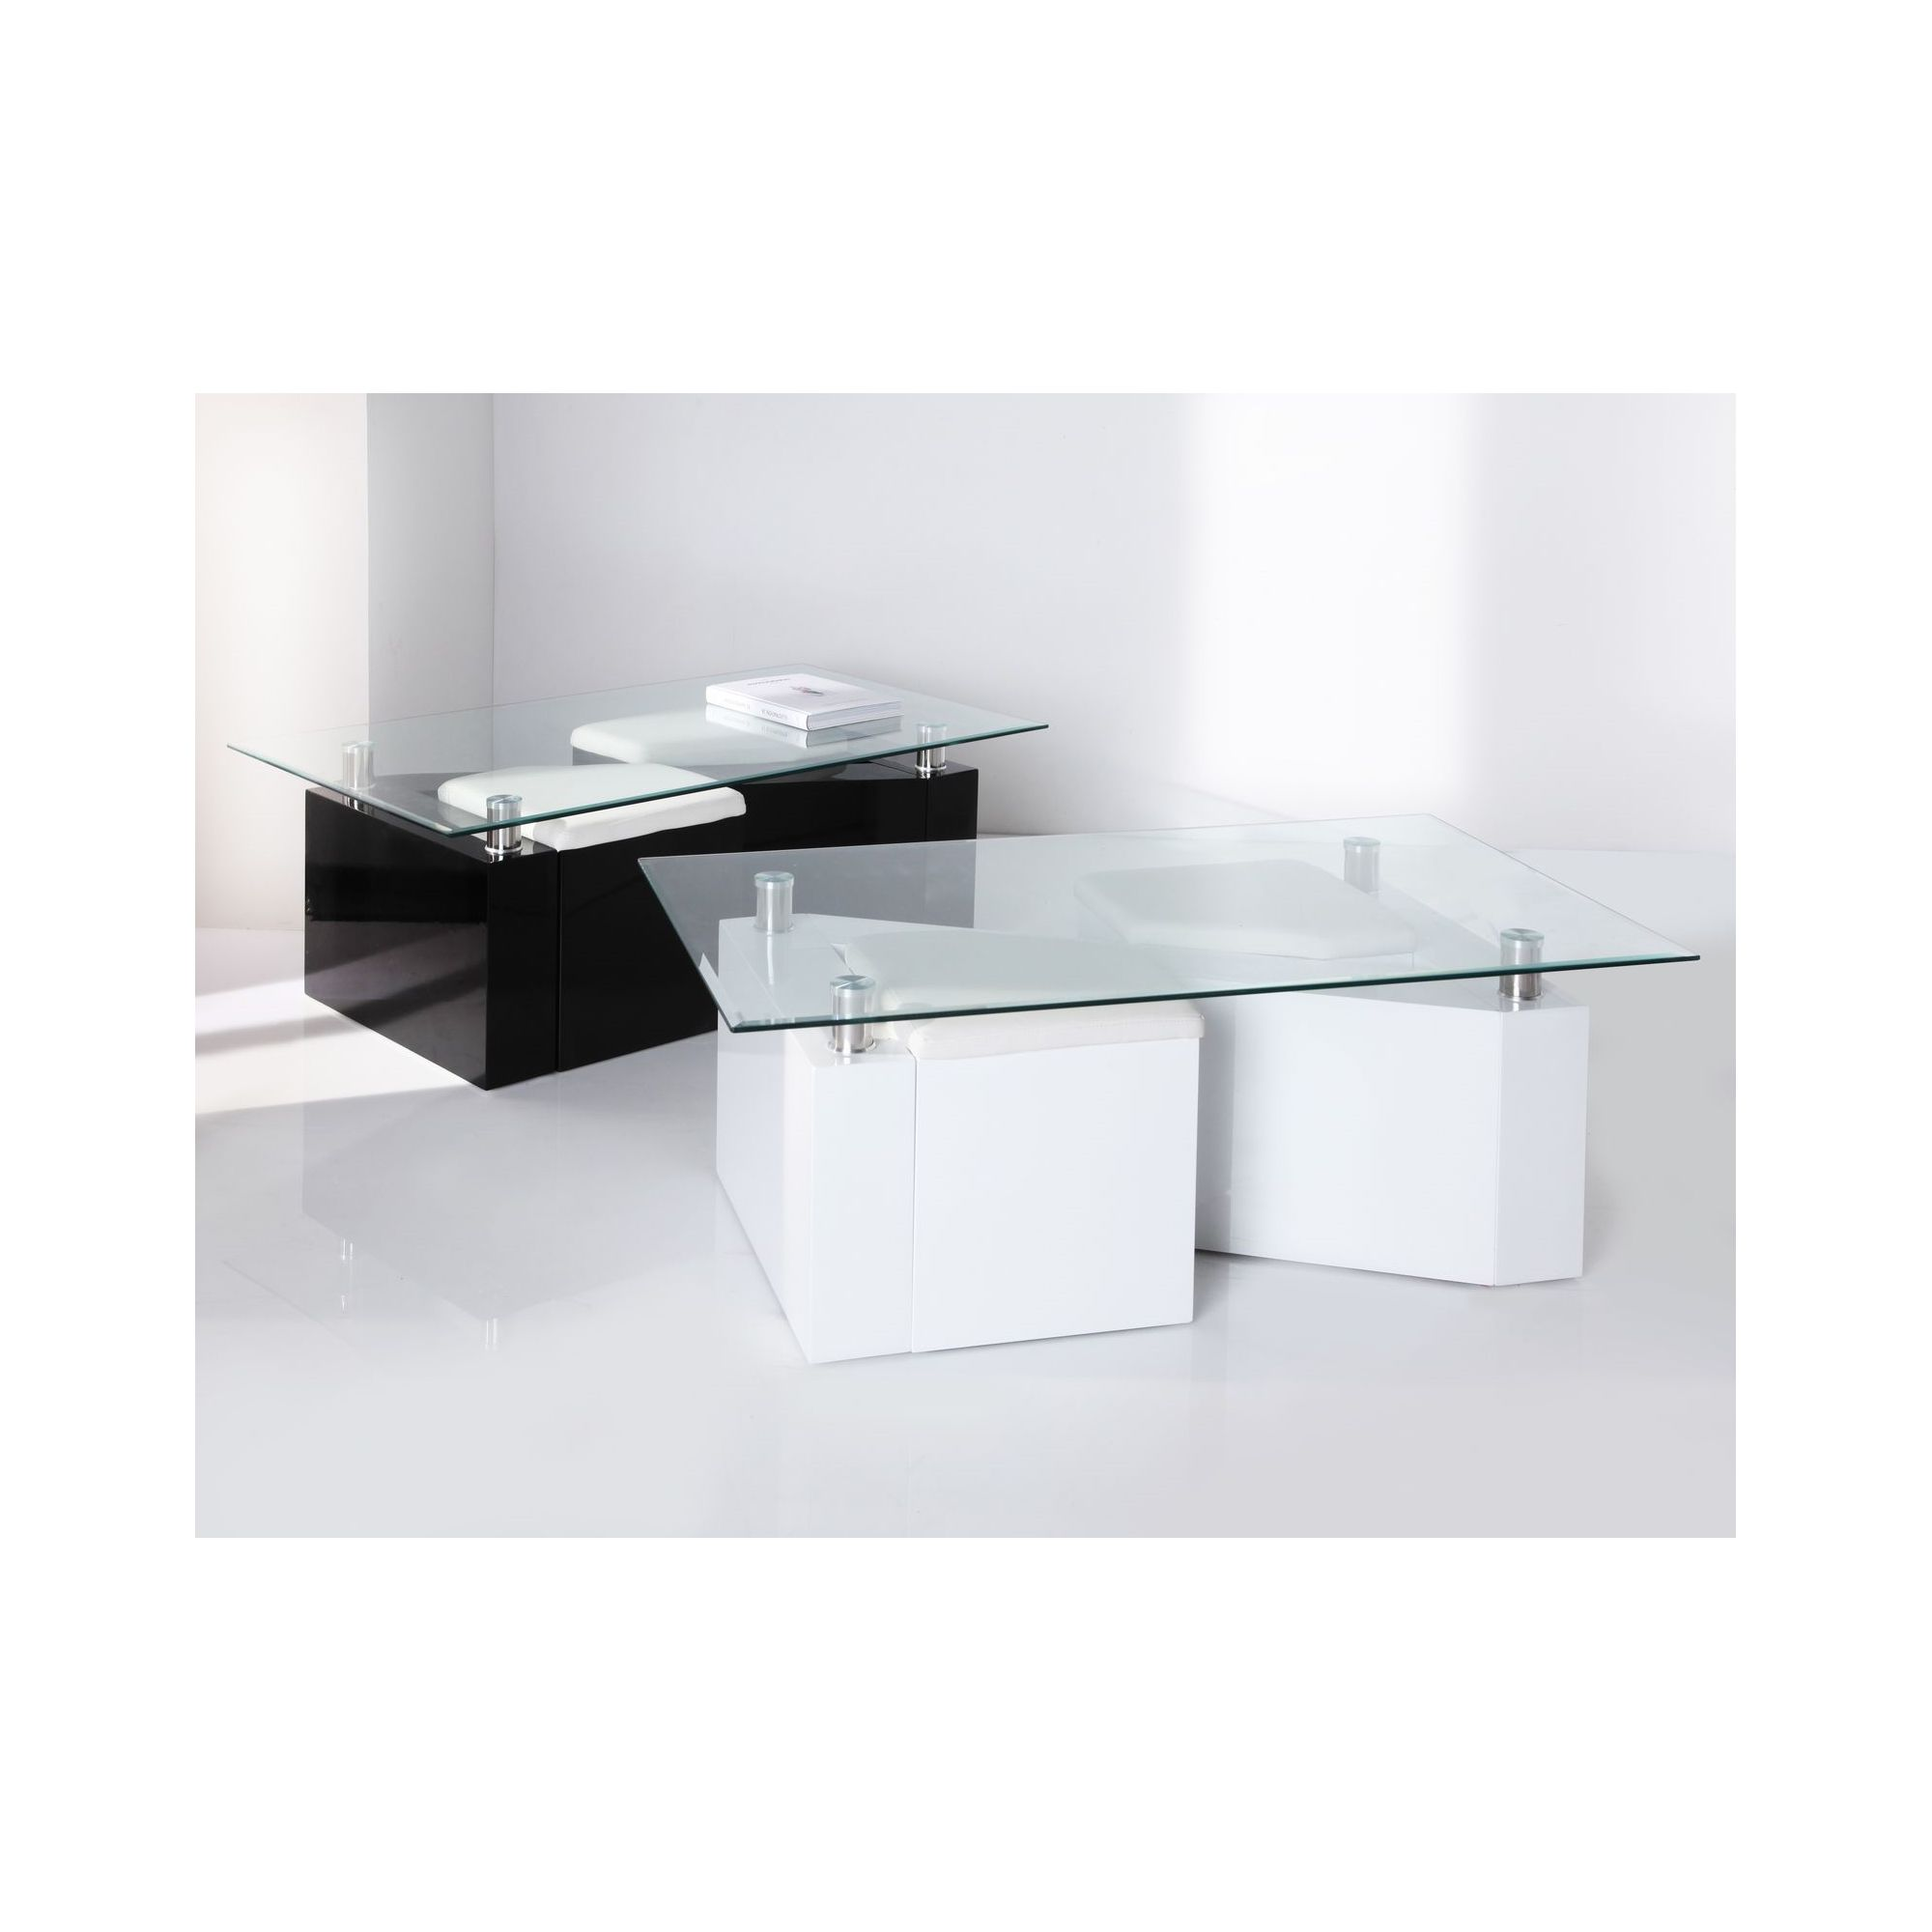 Wilkinson Furniture Ludo Coffee Table - Black at Tesco Direct